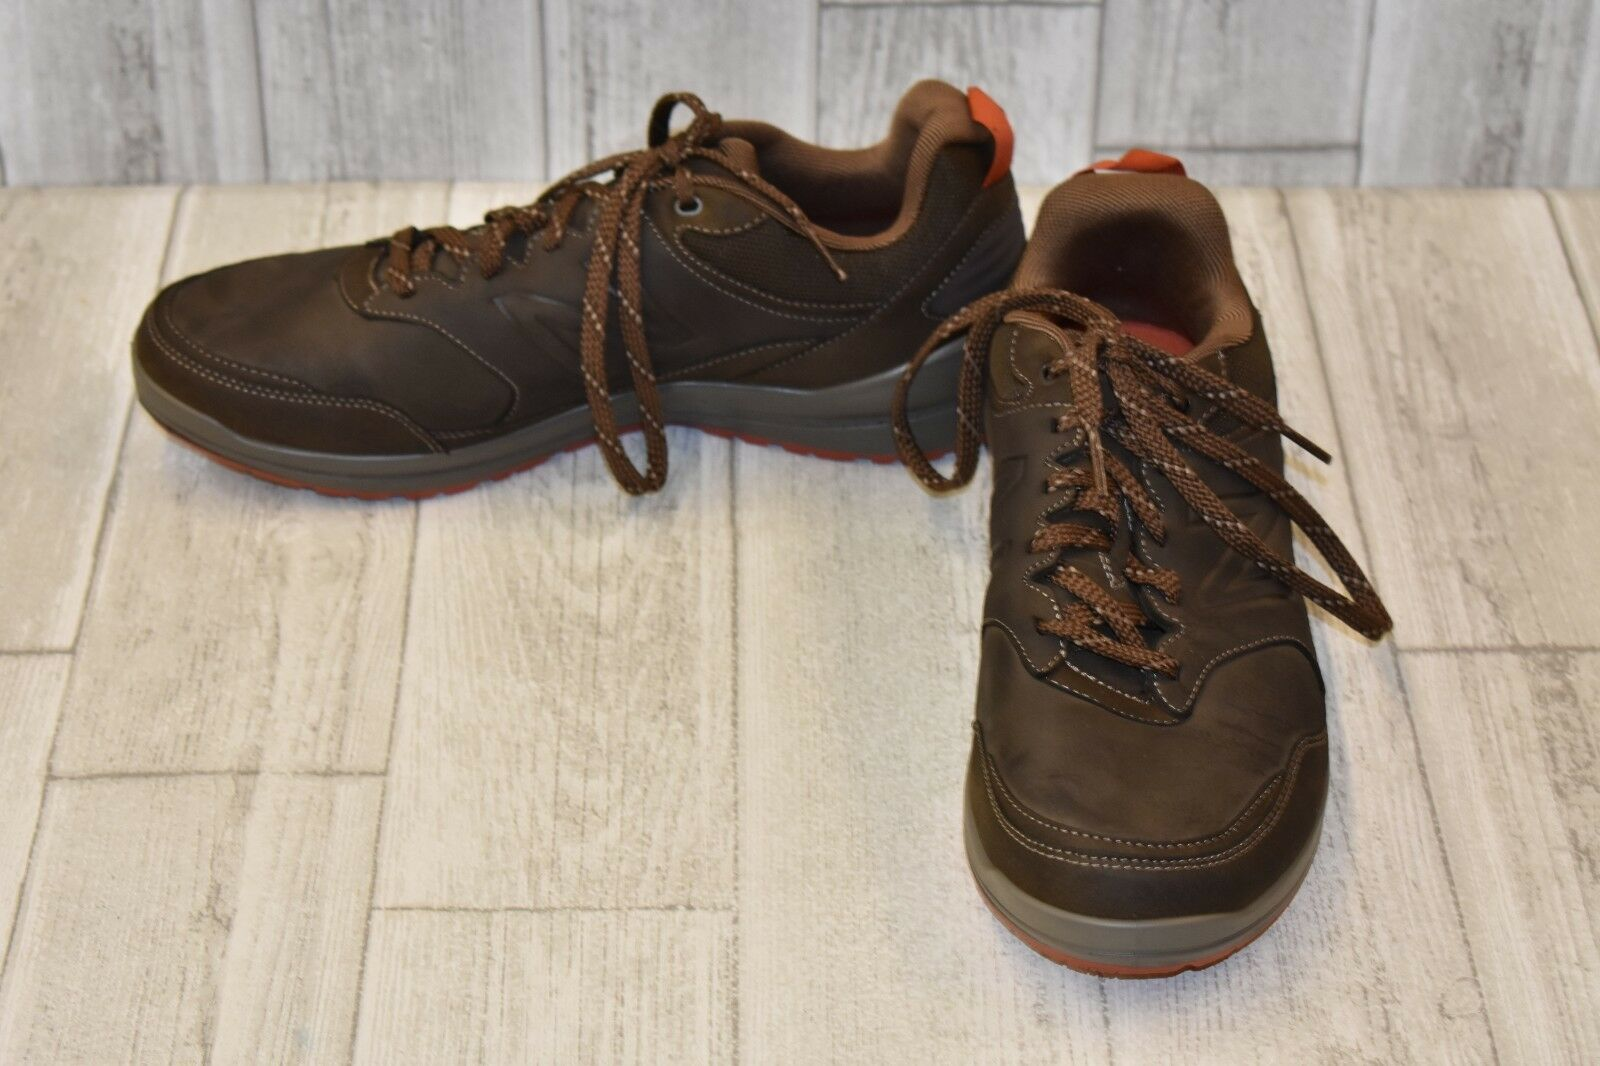 New Balance 3000 Hiking shoes - Men's Size 11.5D, Brown